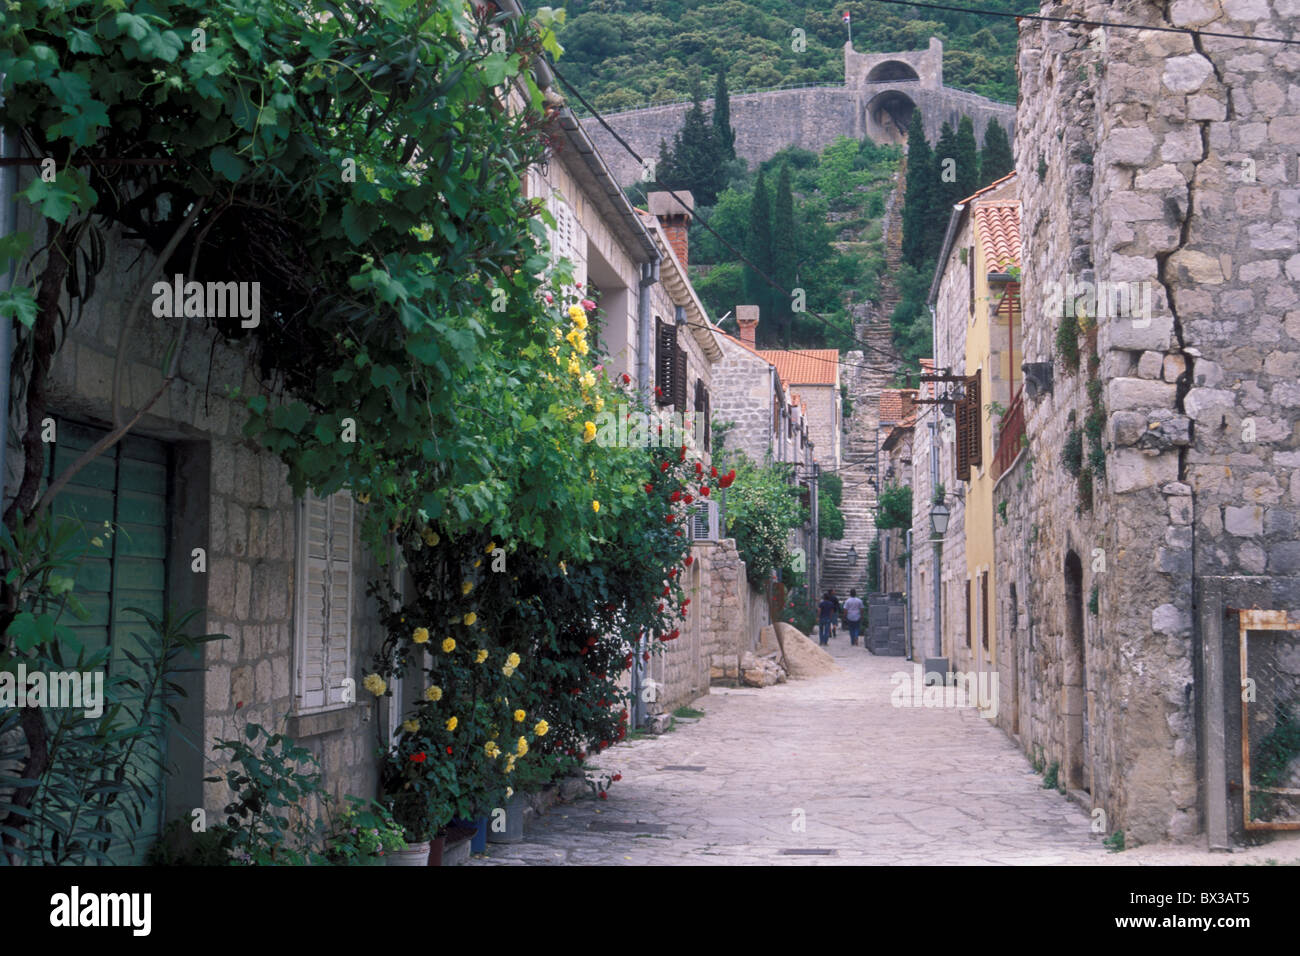 City Ston defense wall 14th century earthquake damage visible Peljesac Peninsula Dalmatia Europe Croatia - Stock Image